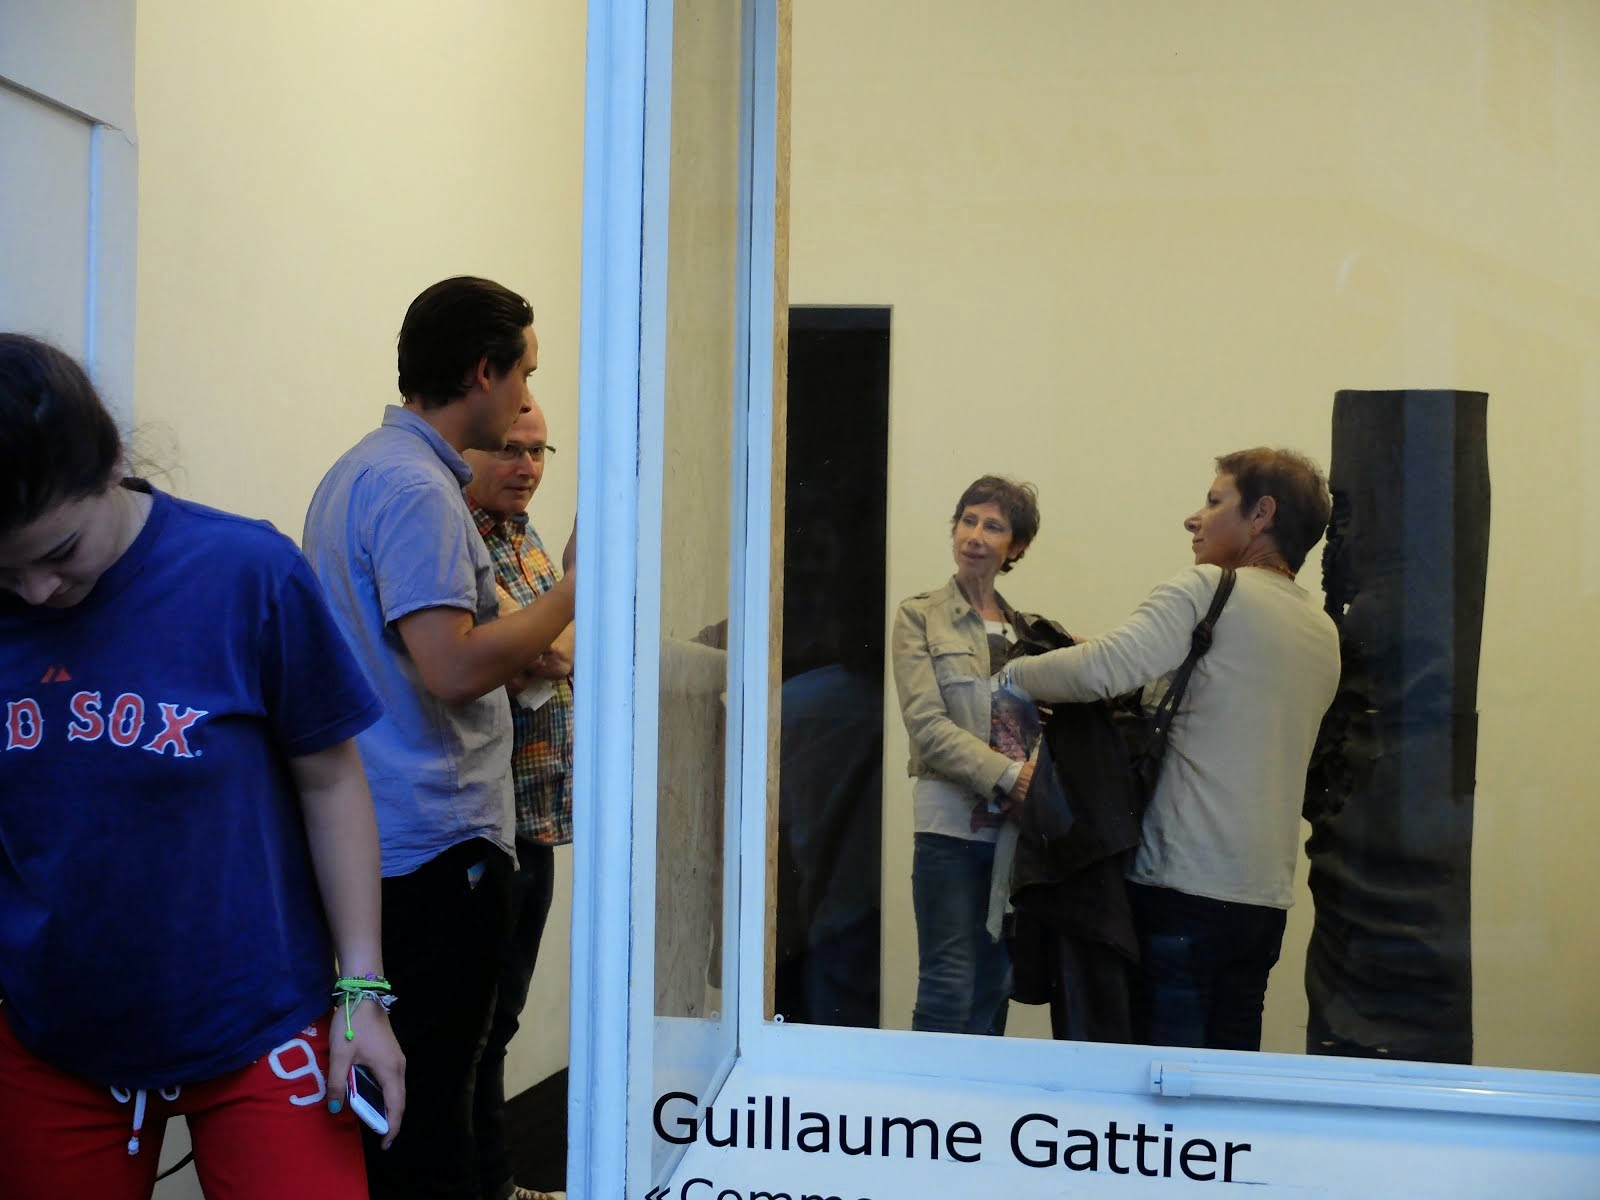 Guillaume Gattier vernissage